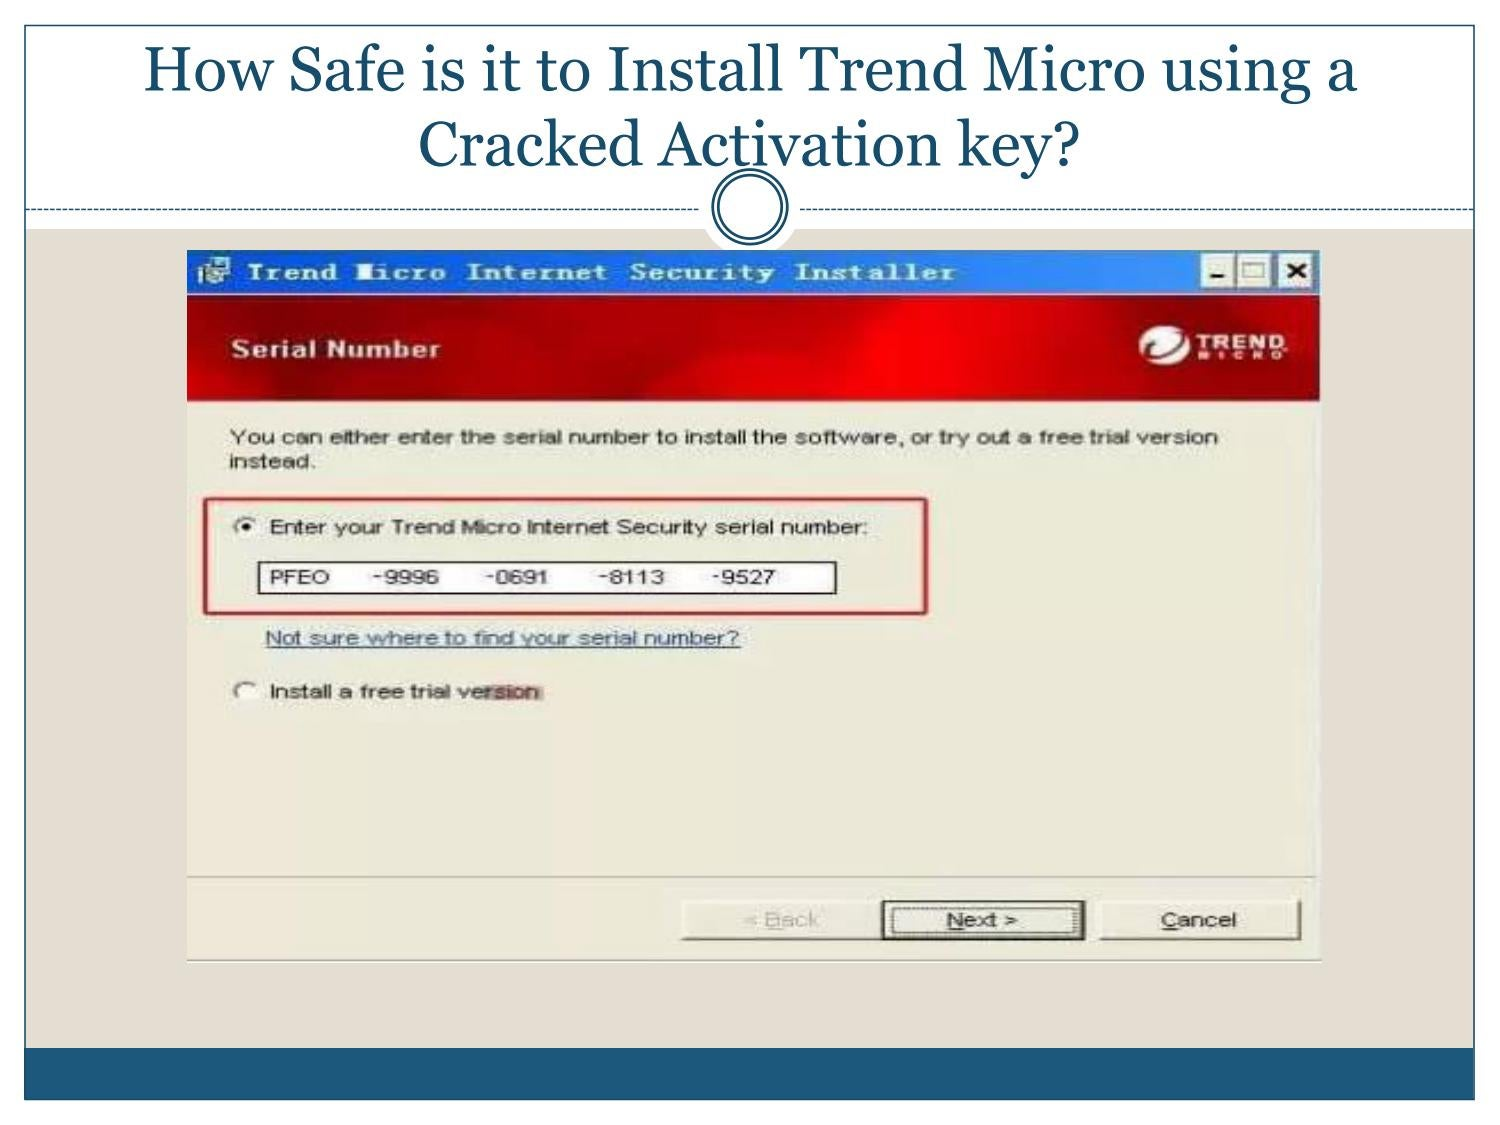 How safe is it to install Trend Micro using a cracked activation key